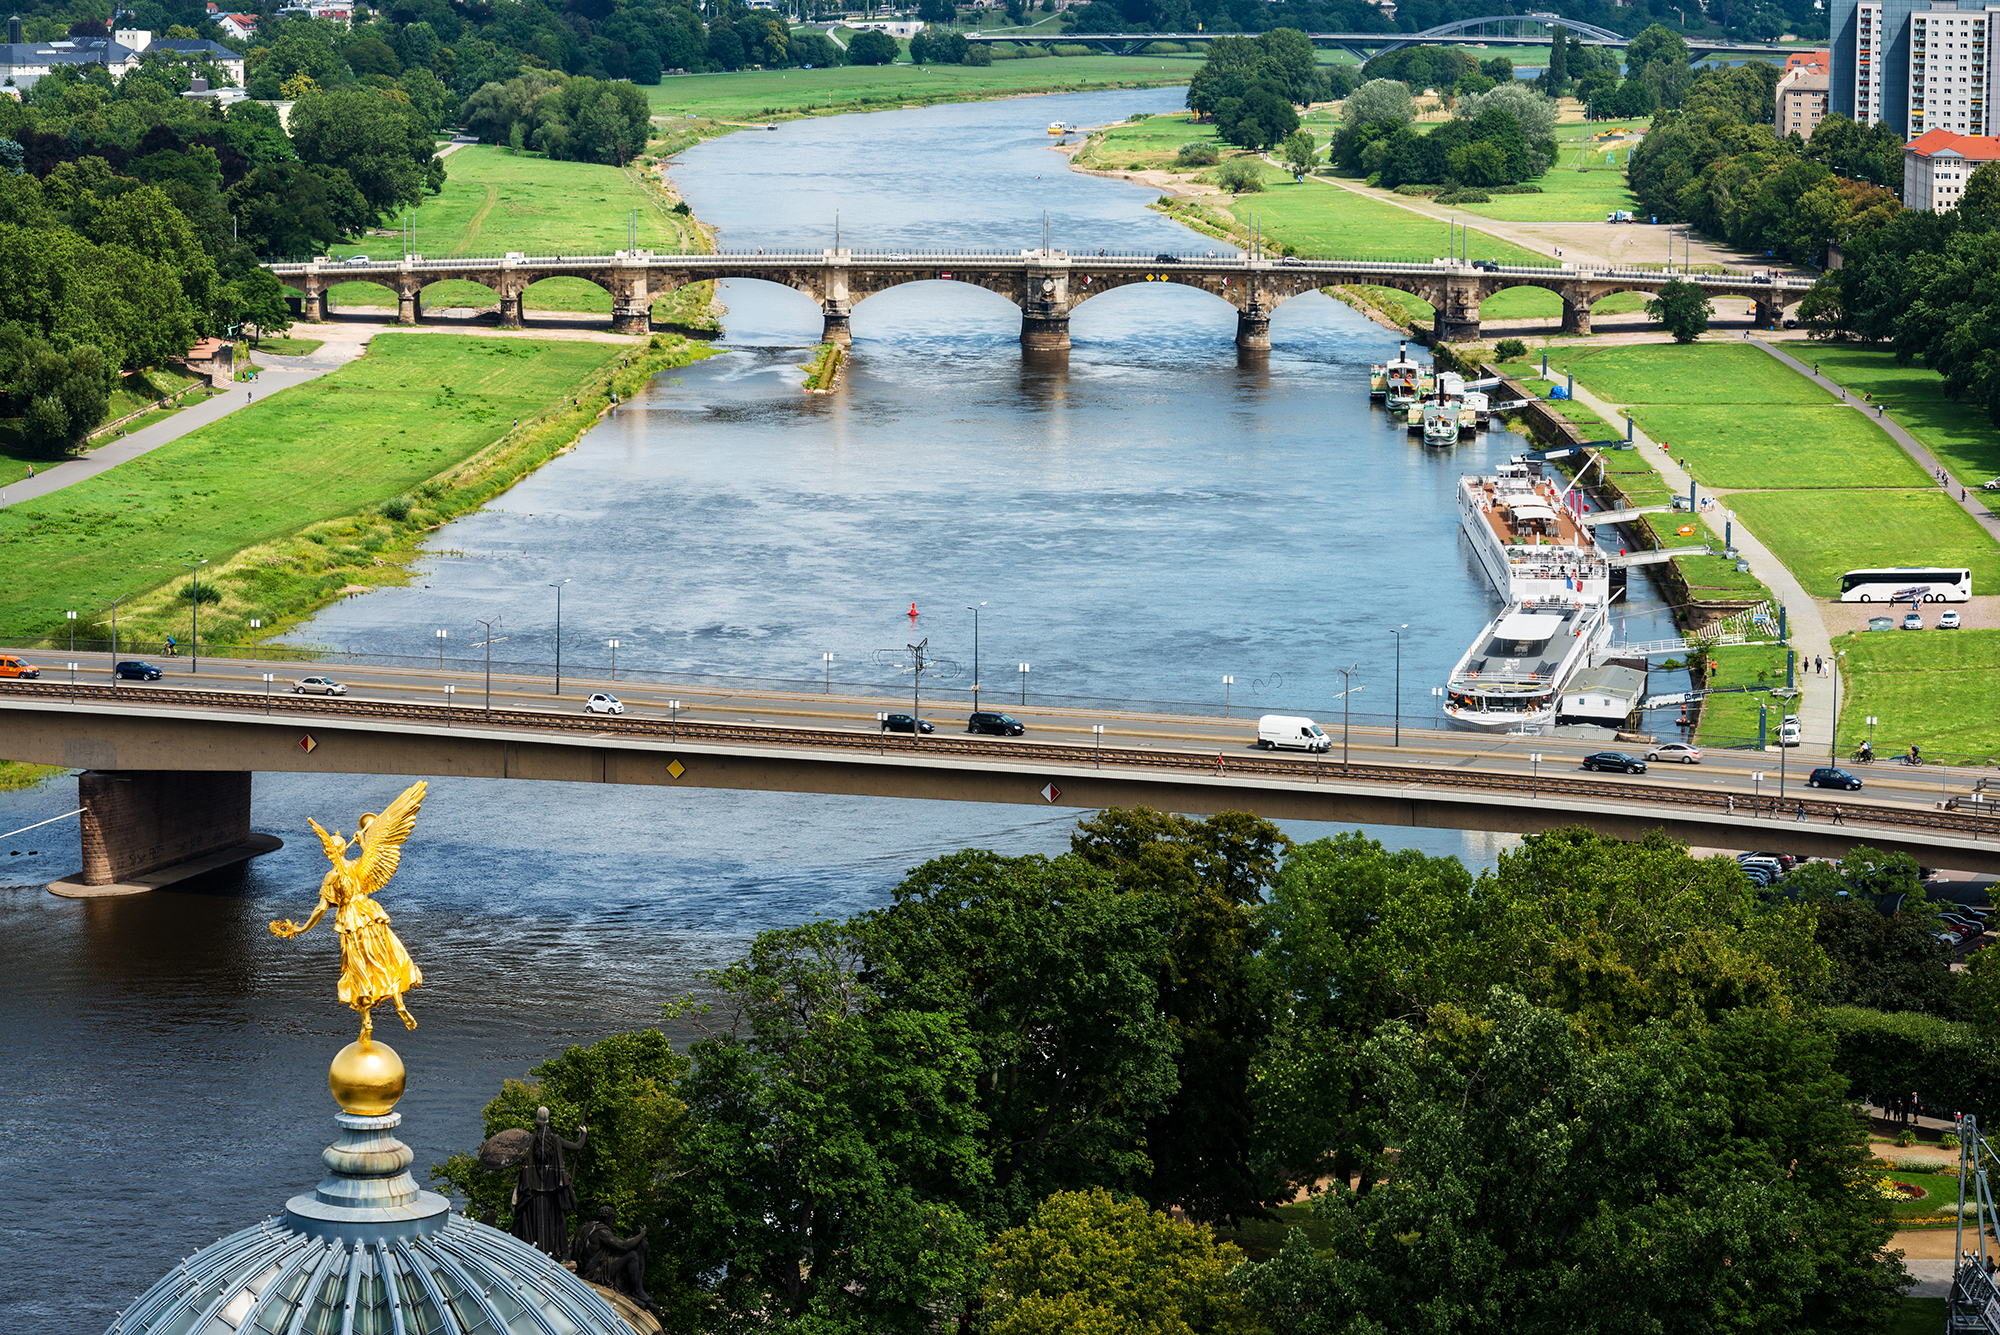 Aerial view of the Elbe river